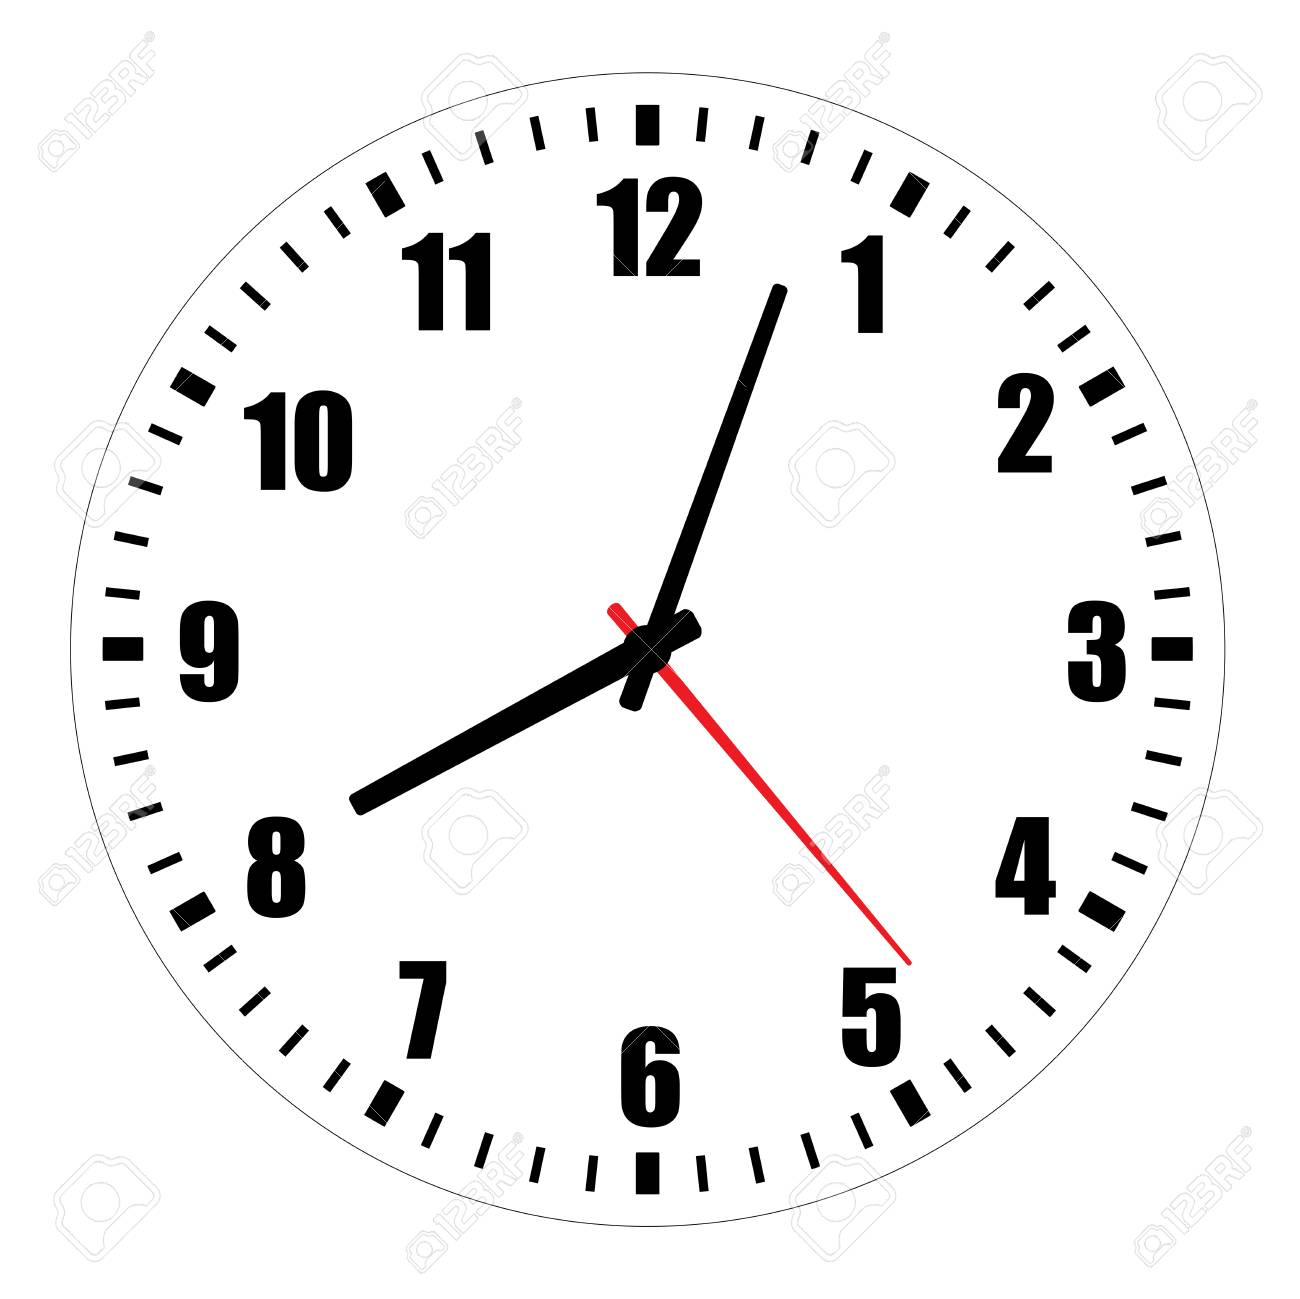 photograph relating to Printable Clock Face With Hands called Vector instance of blank clock experience dial with Arabic numerals,..